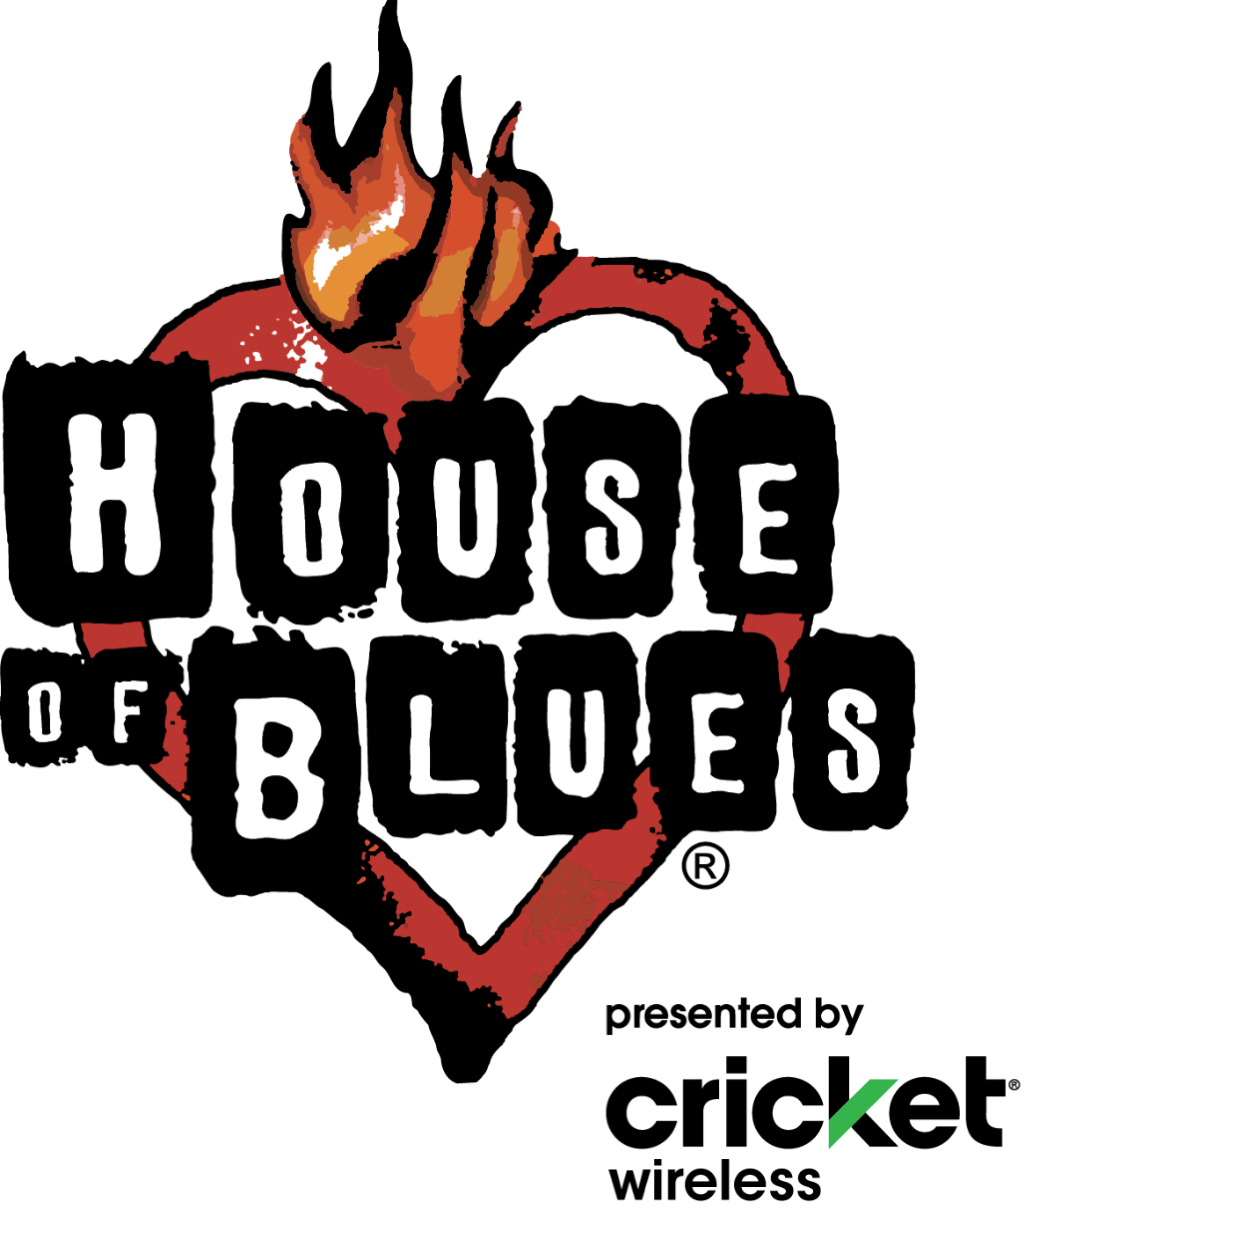 The Deck at House of Blues